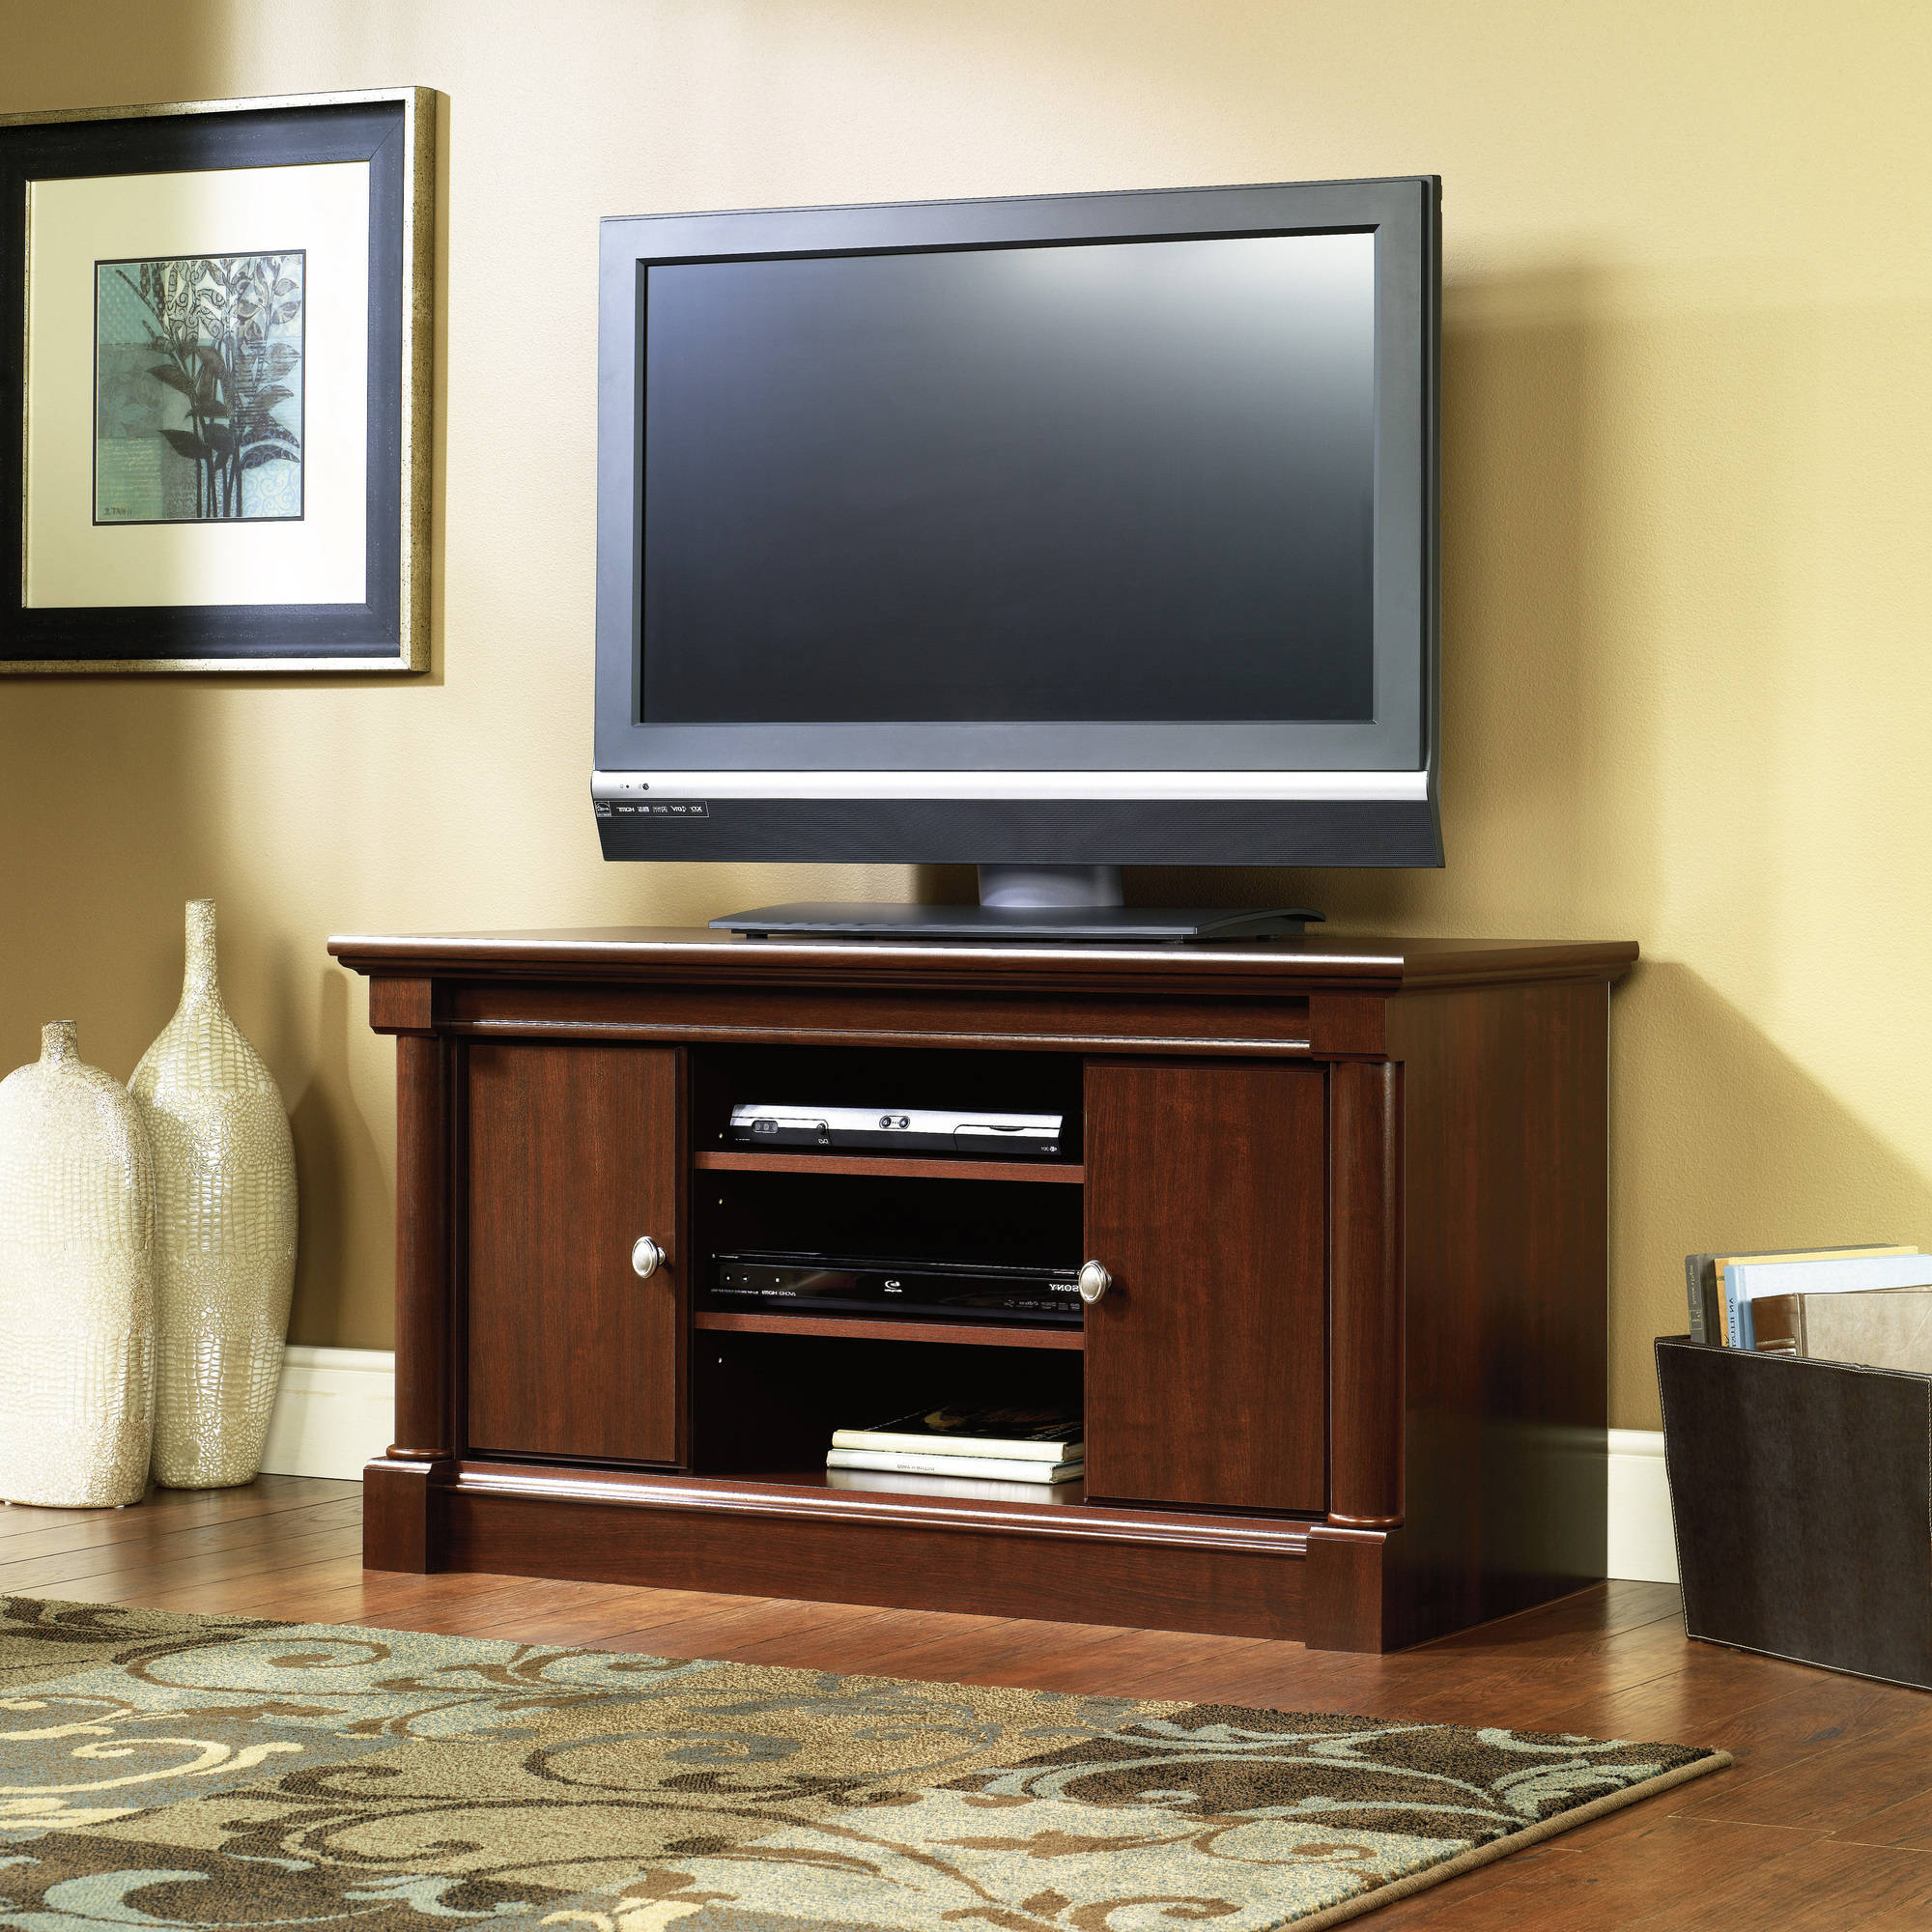 Fashionable Cherry Tv Stand Entertainment Center With Storage Media Furniture Intended For Cherry Wood Tv Stands (View 2 of 20)